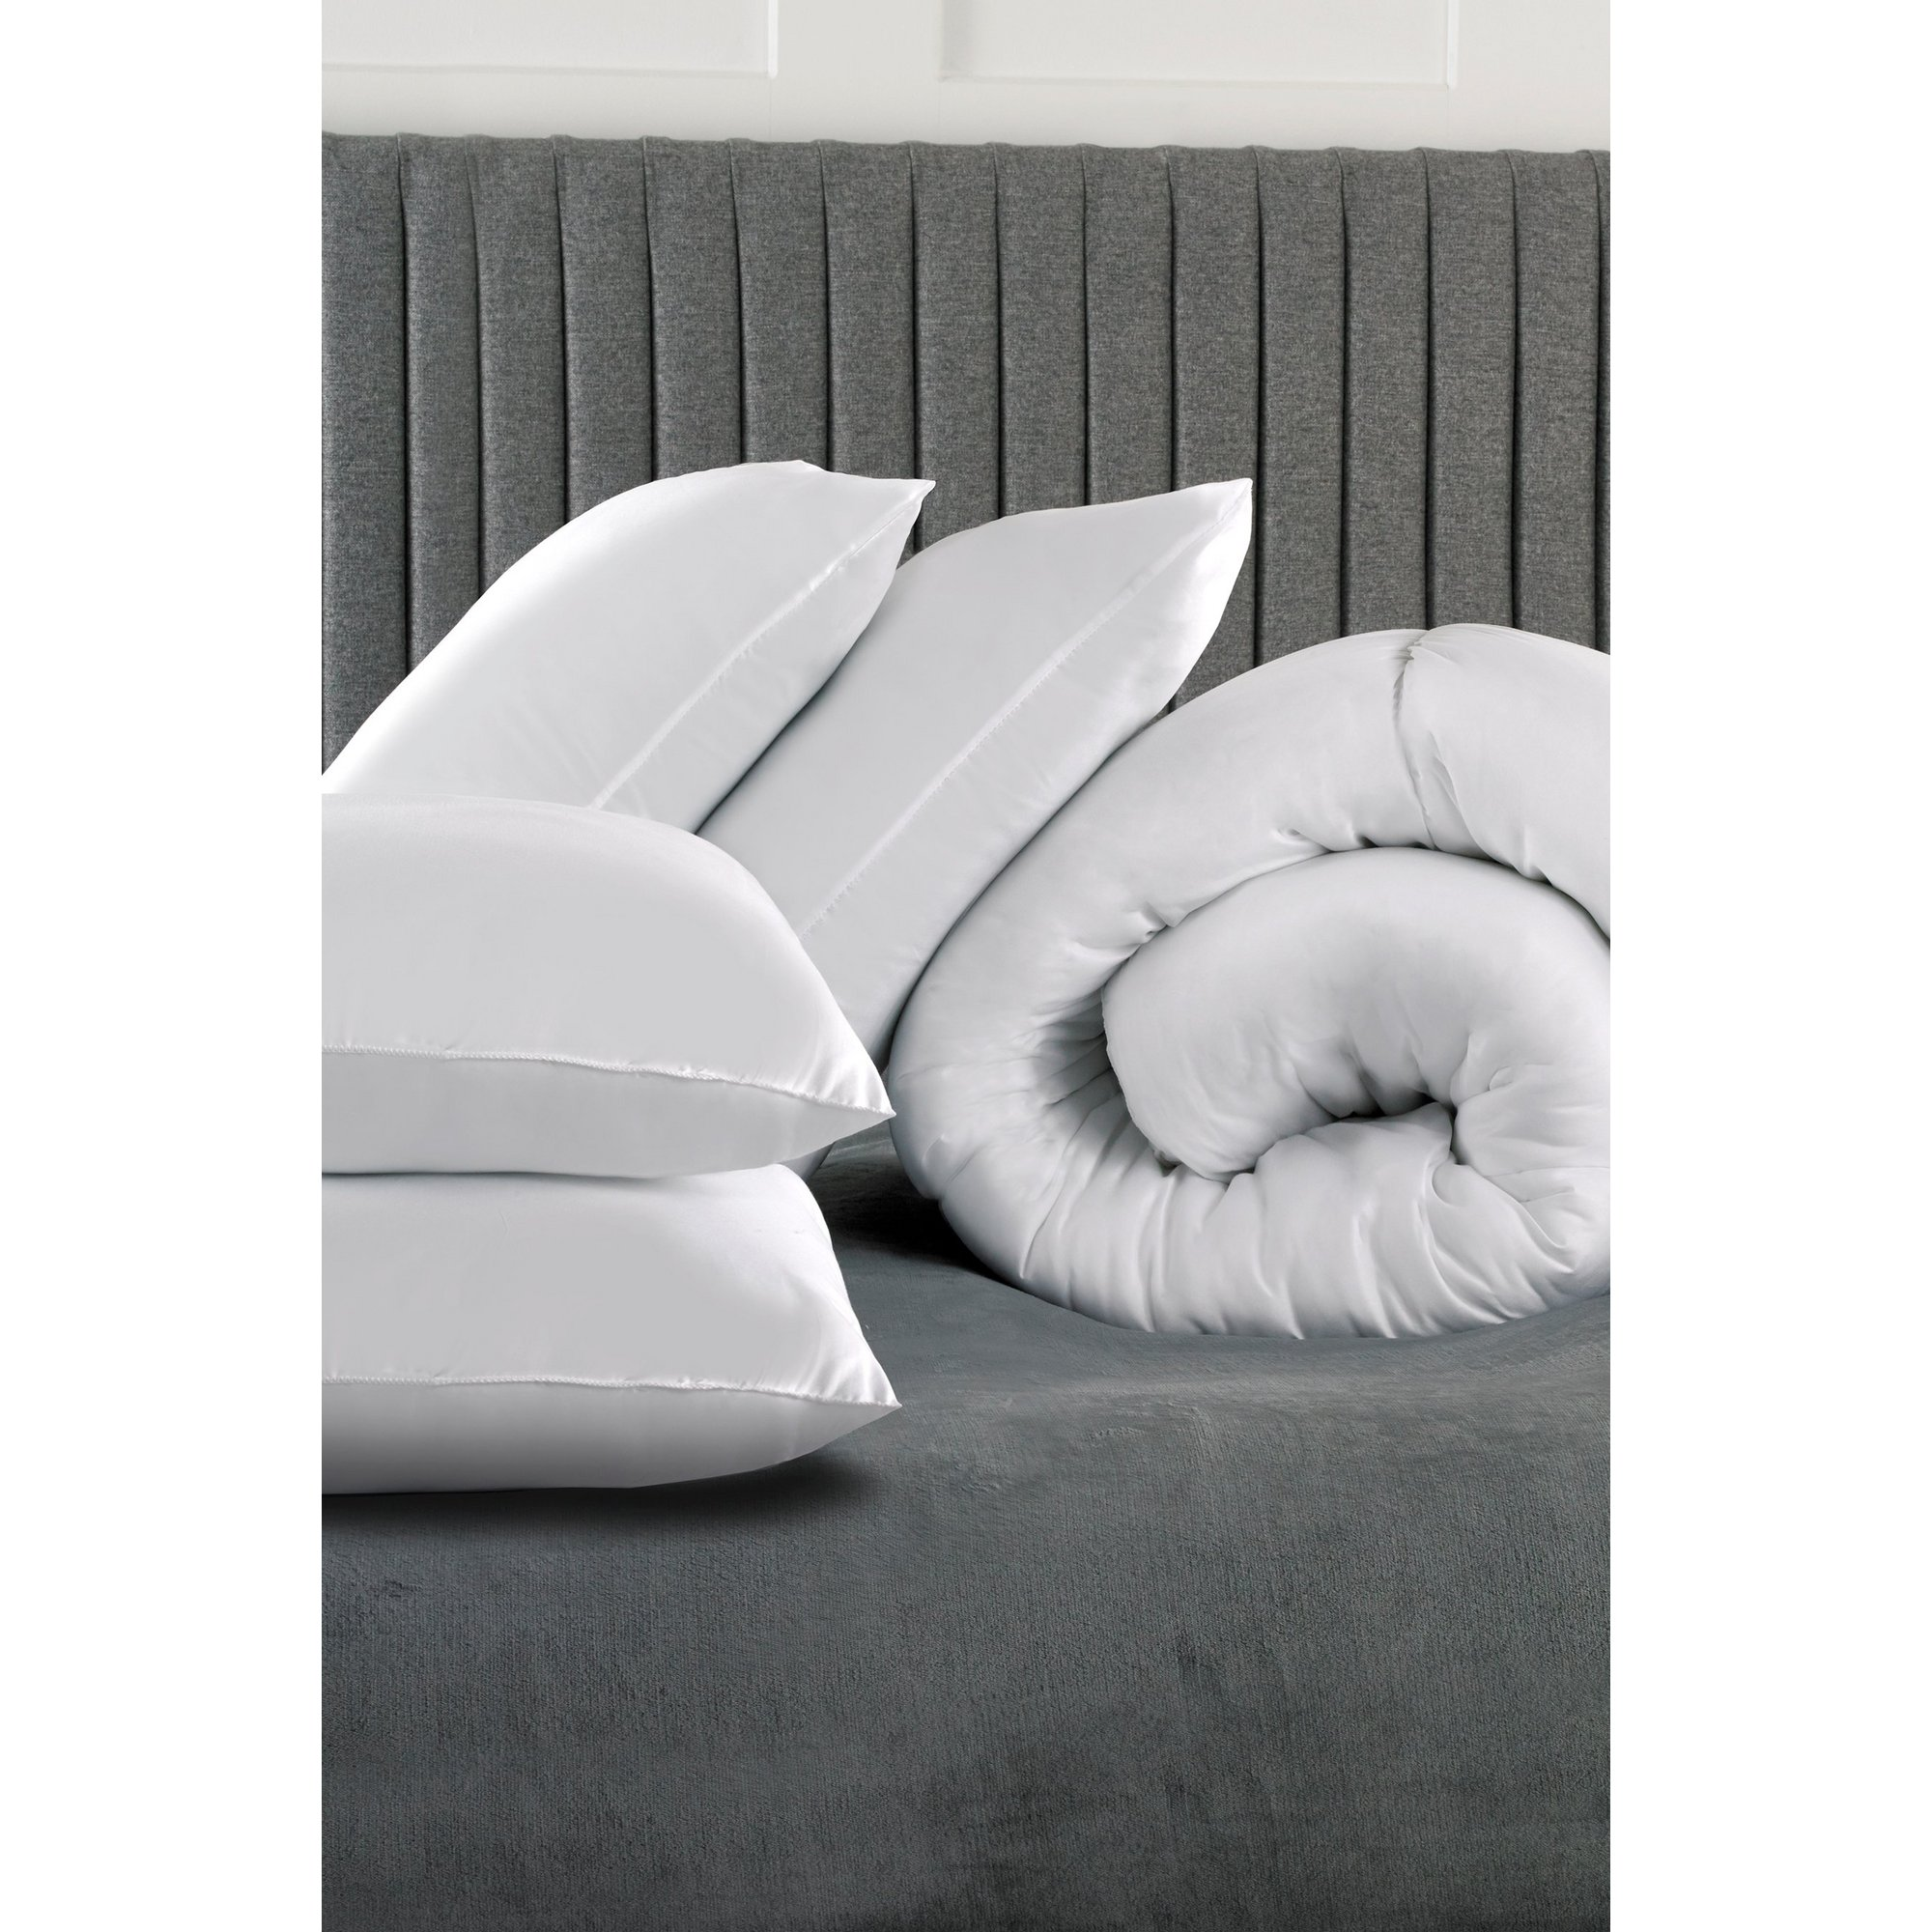 Image of Relax 13.5 Tog Duvet and 4 Pillows Bundle